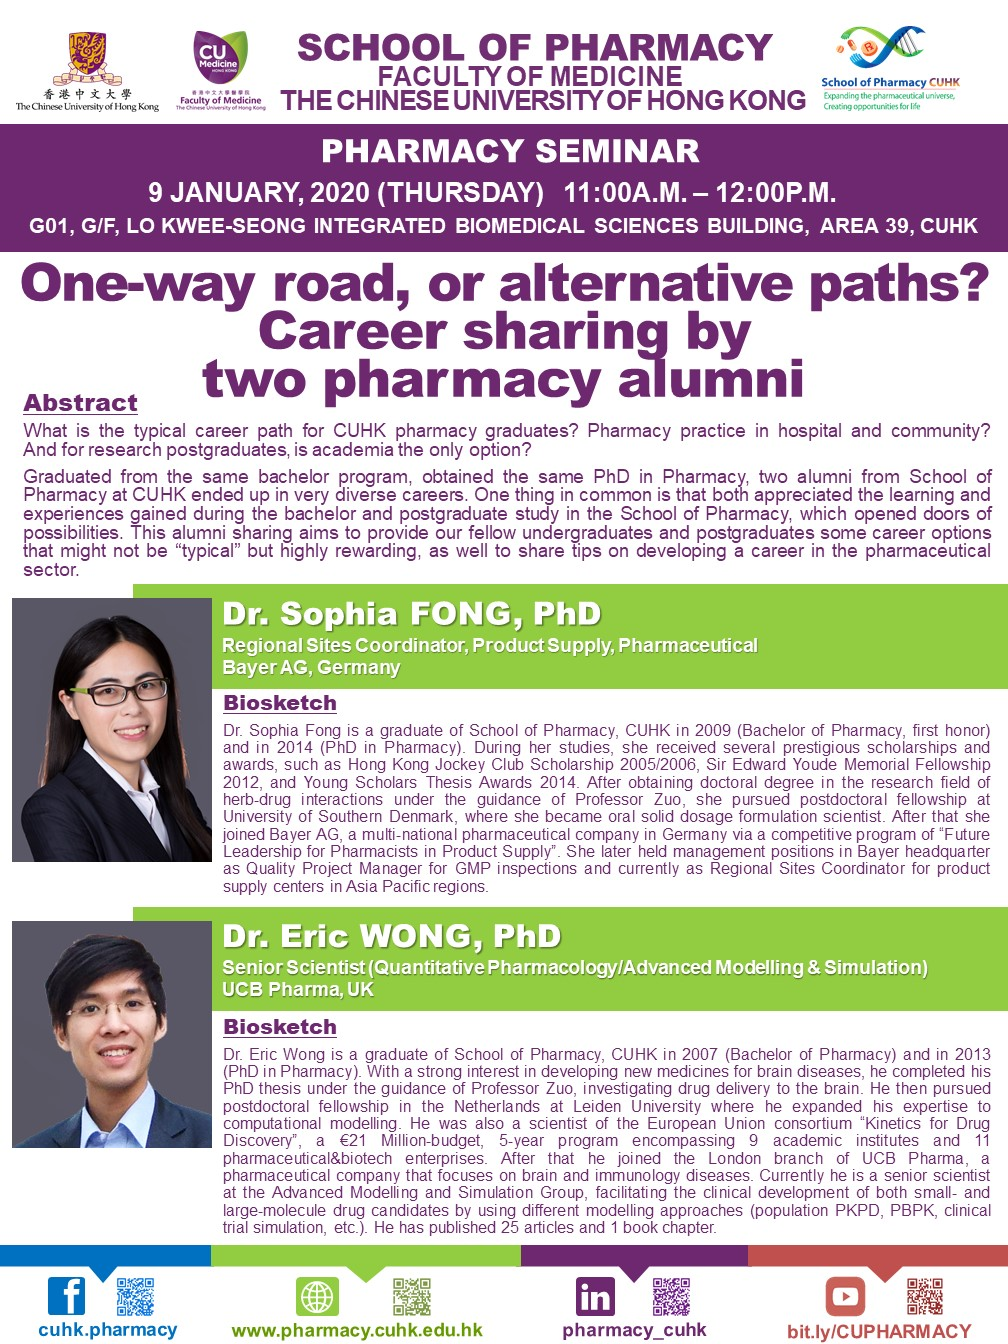 Pharmacy Seminar - One-way road, or alternative paths? Career sharing by two pharmacy alumni